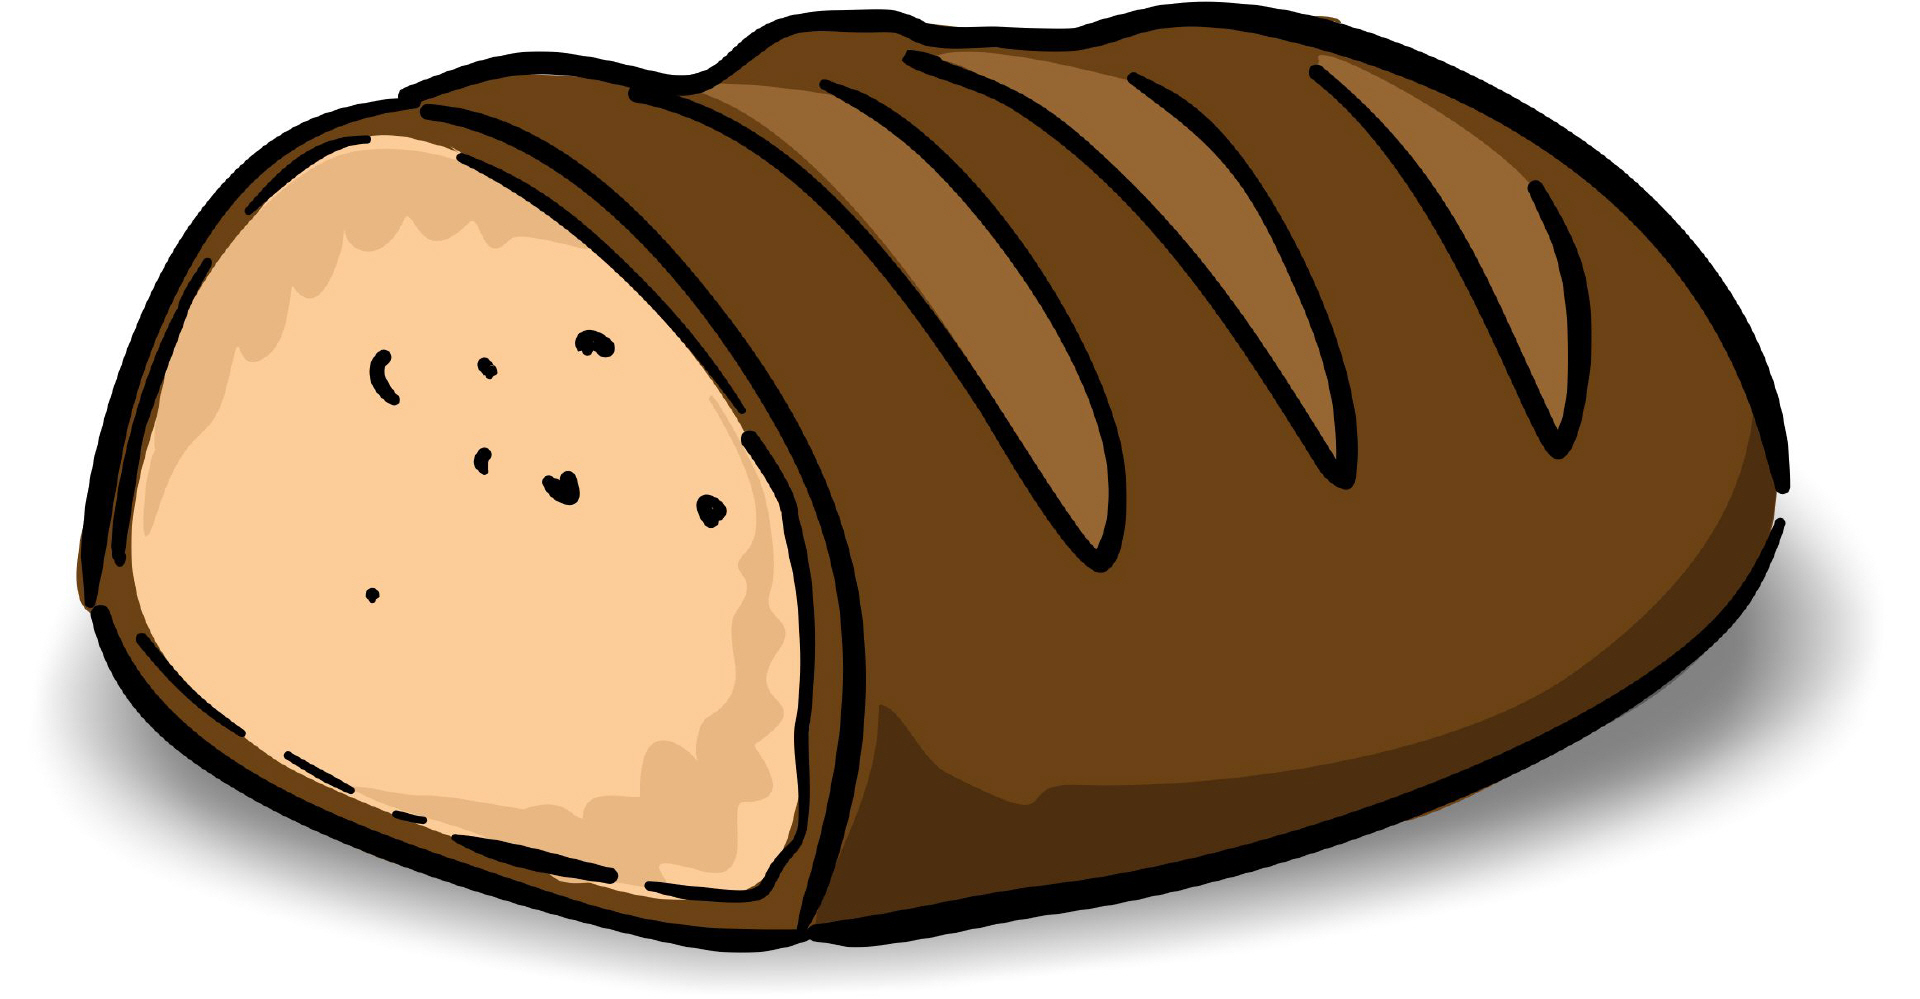 clipart brot 6 » clipart station